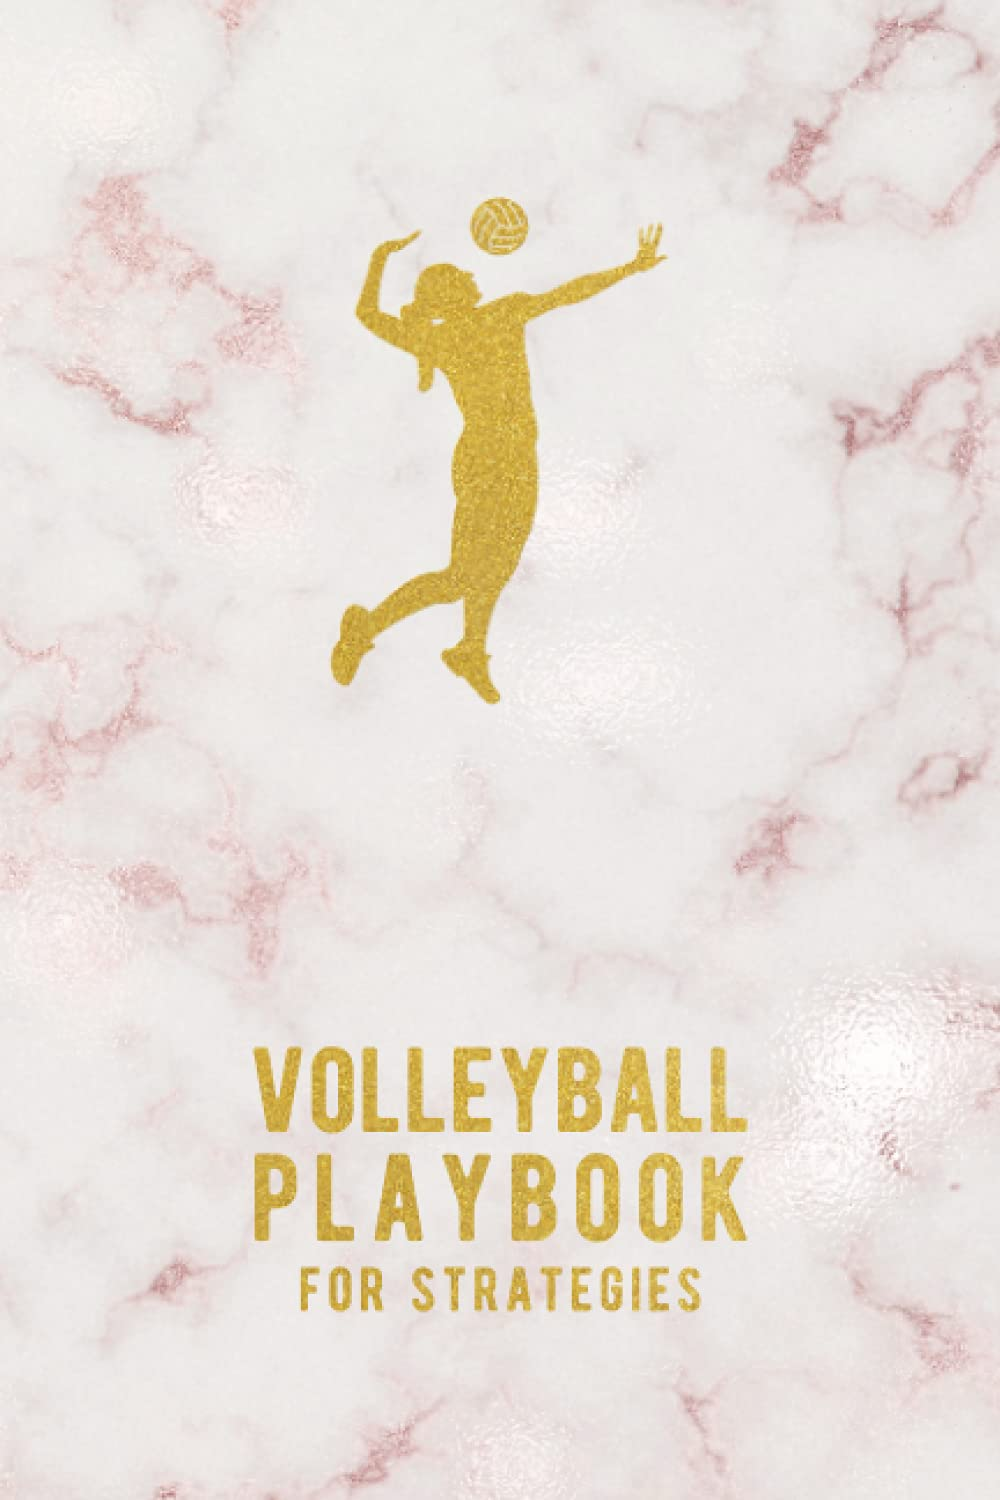 Volleyball Playbook For Strategies: Blank Game Fields Notebook To Plan Your Tactics